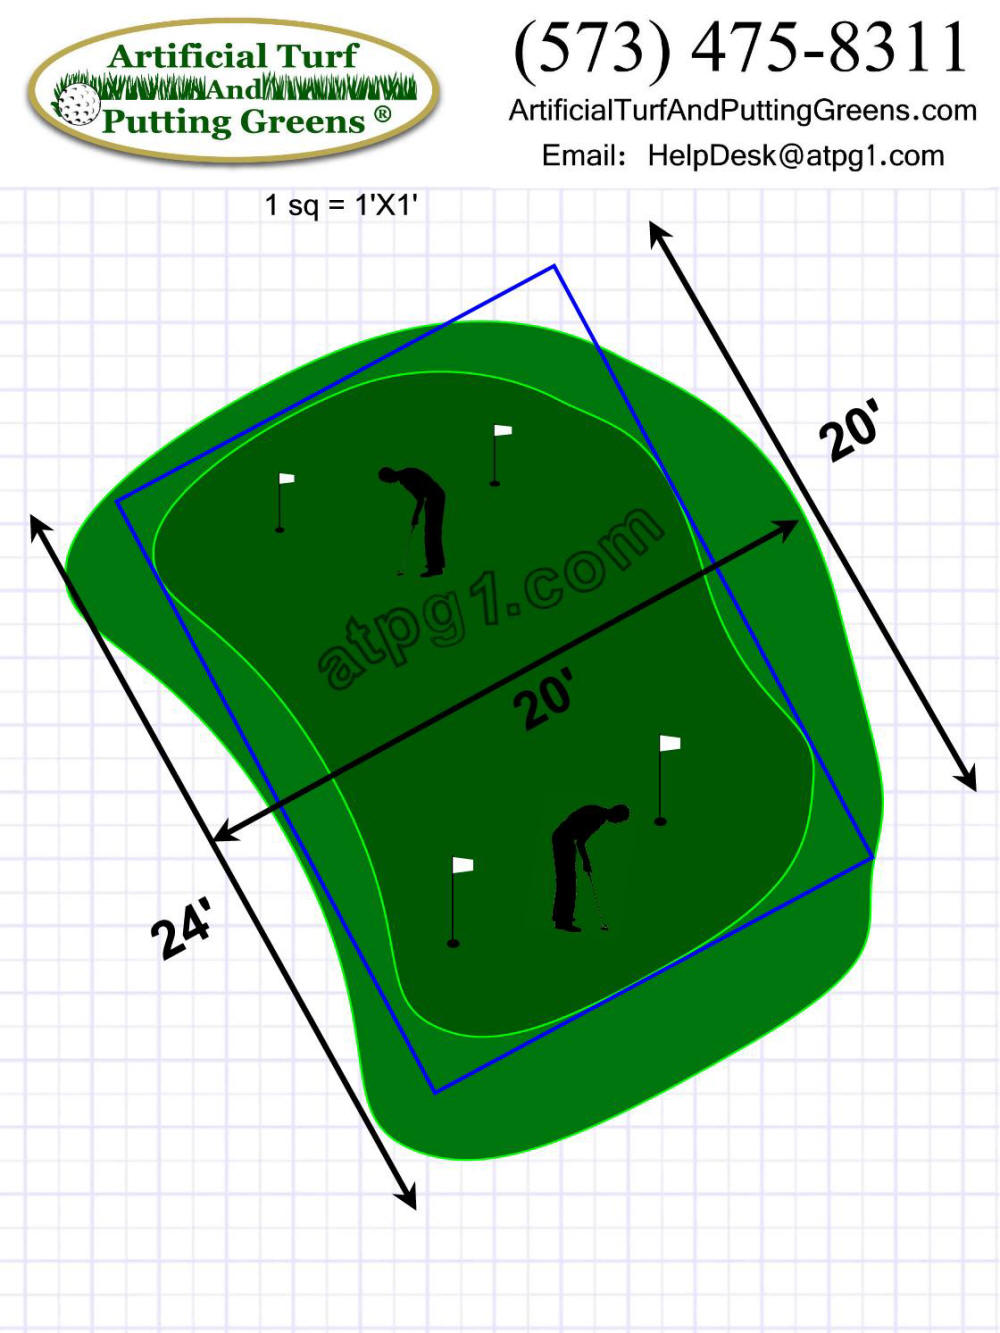 Putting Greens - free putting green designs (plans)